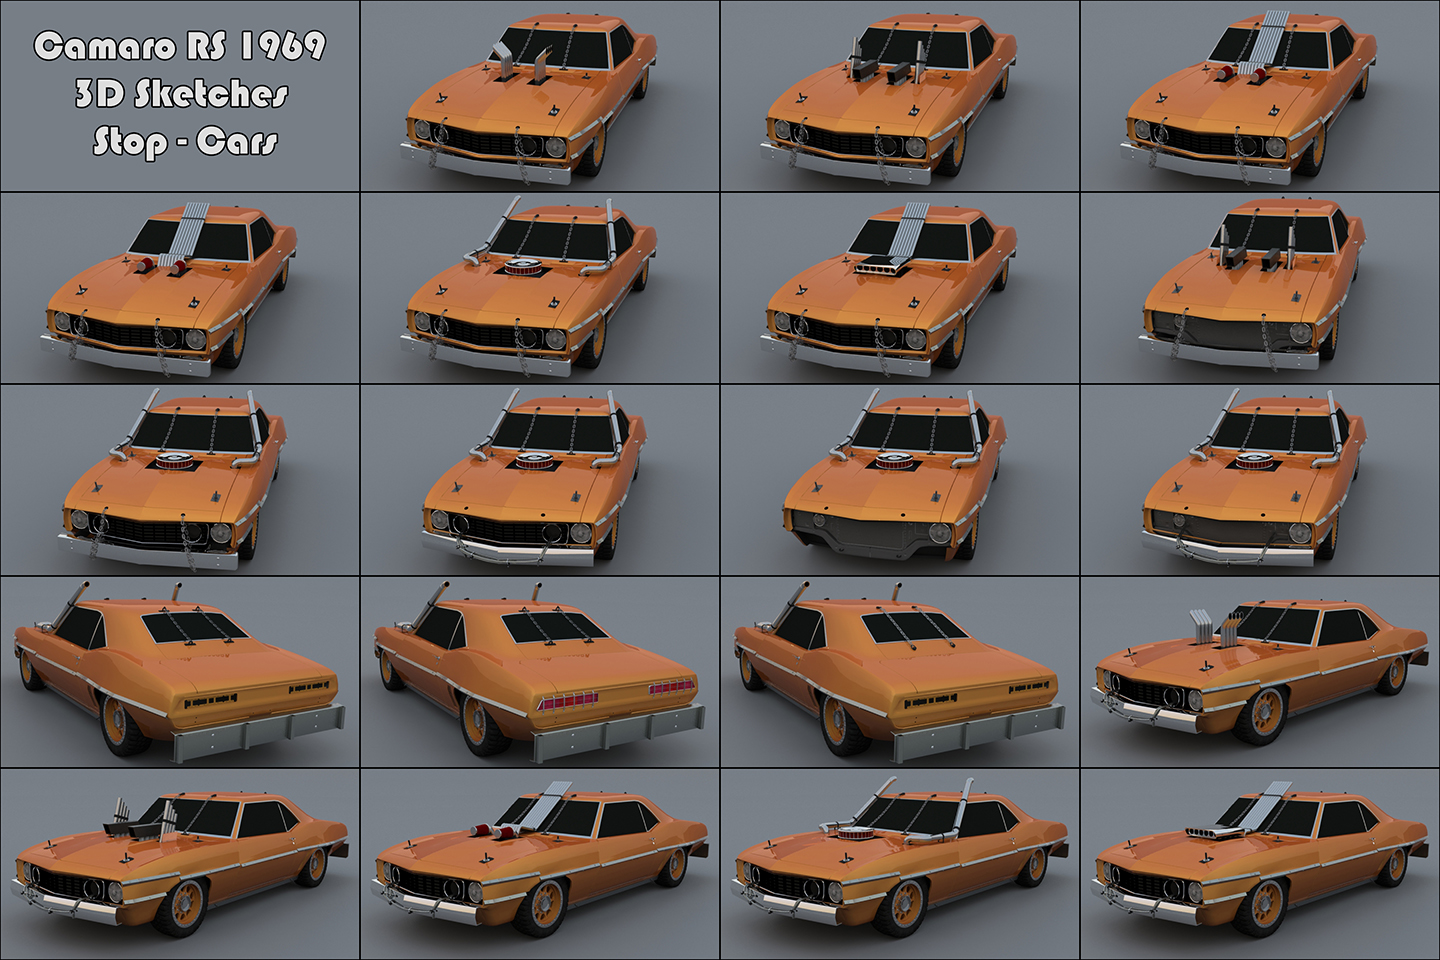 2010-07_The Crew_F.Beudin_Camaro-RS1969_Sketches-Stop Cars